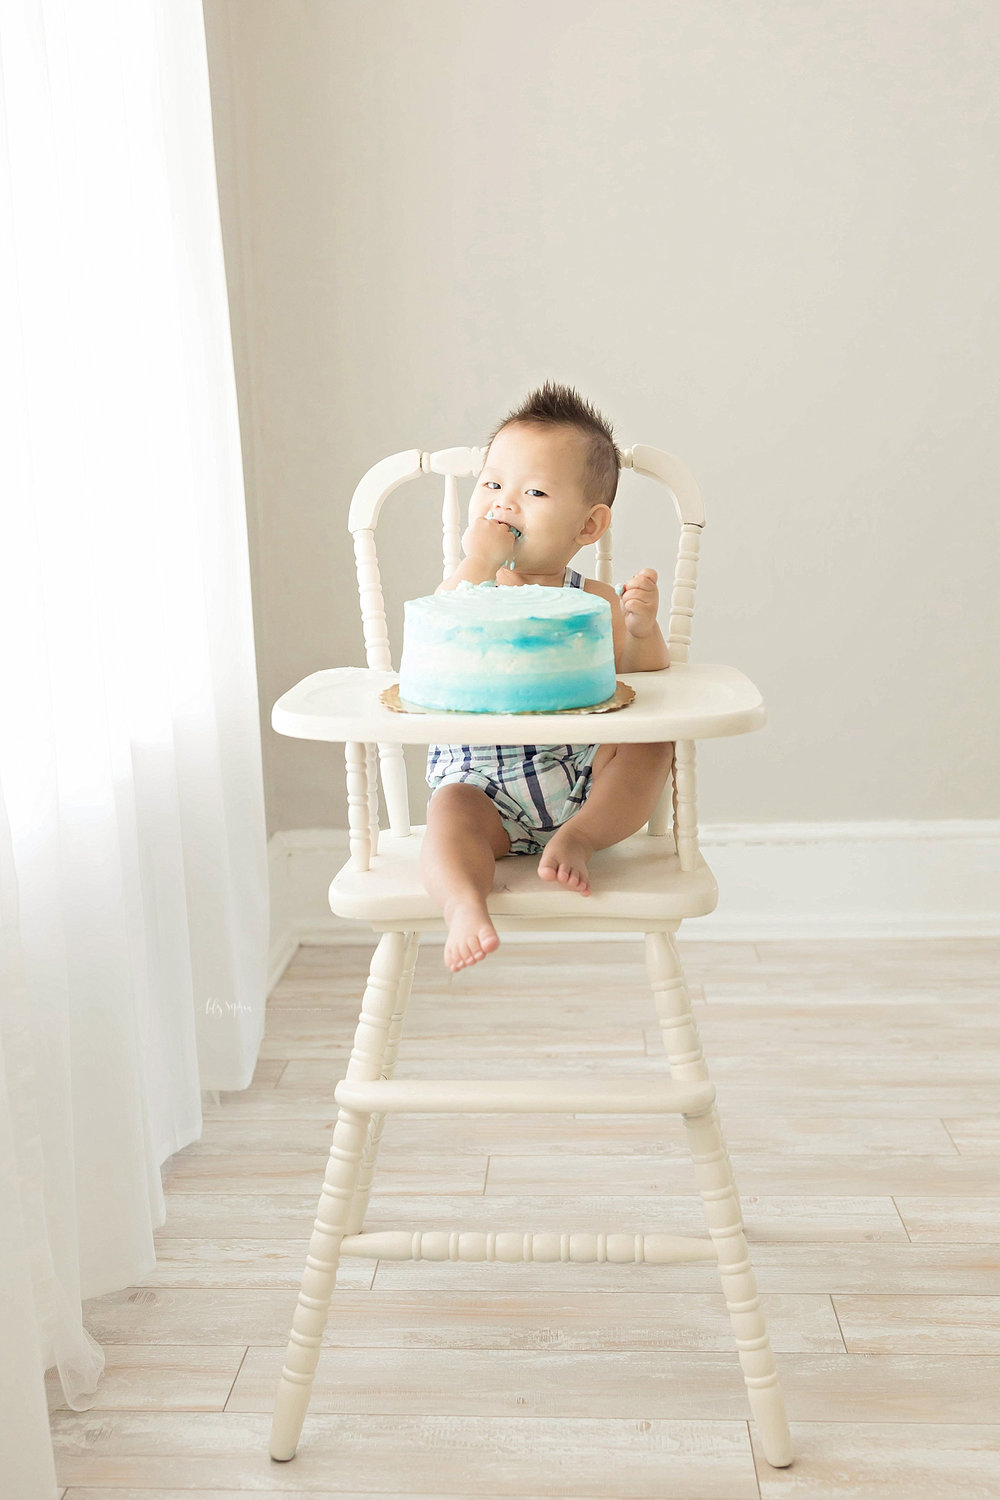 atlanta-georgia-natural-light-studio-intown-first-birthday-cake-smash-baby-boy-big-brother-lawrenceville_3191.jpg